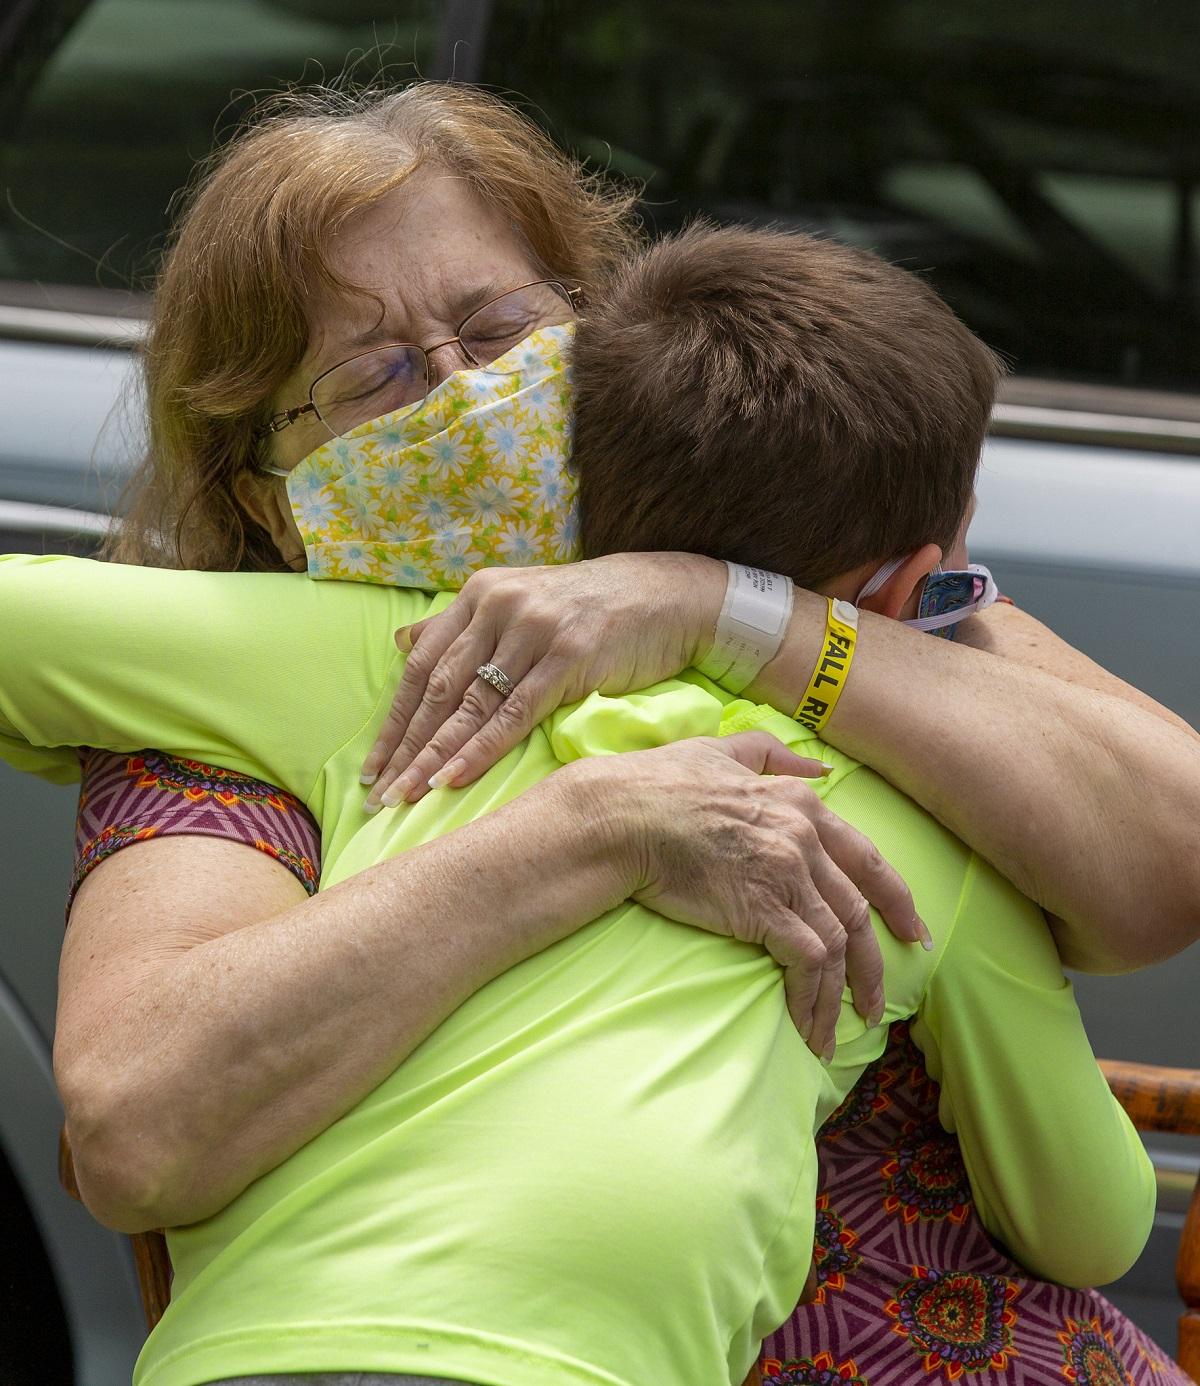 A woman in a surgical mask squeezes her eyes closed as she embraces a young boy.